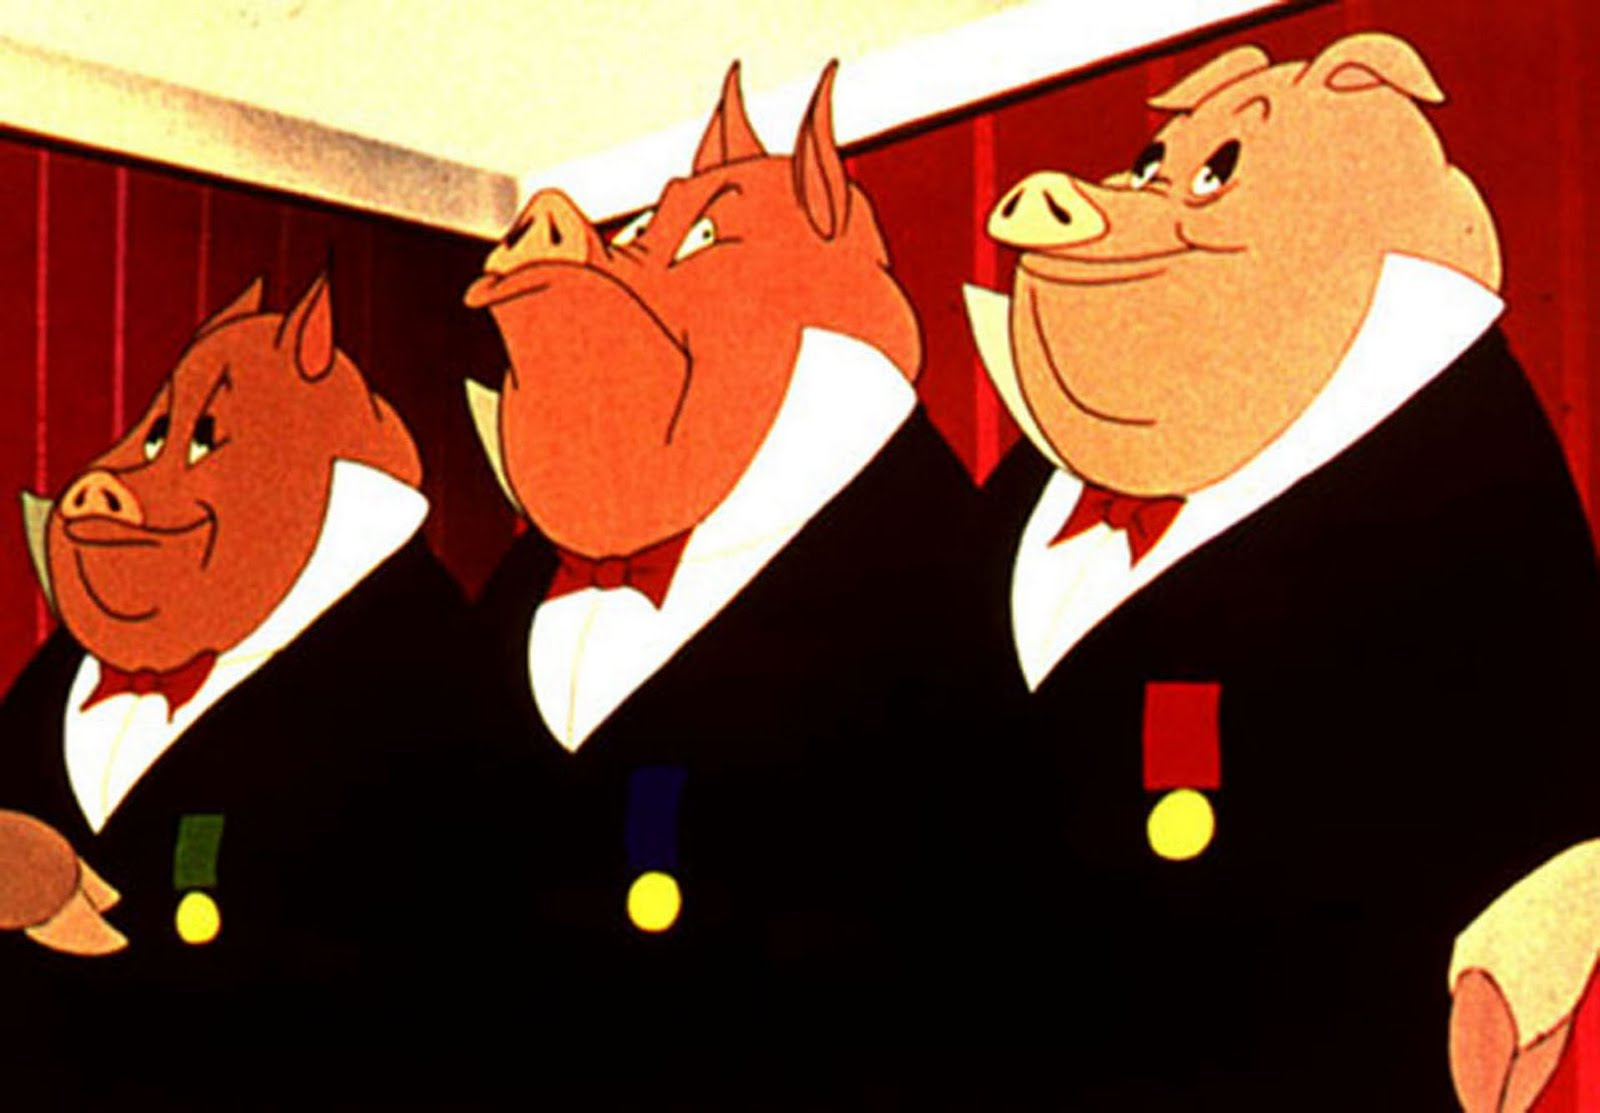 power corrupts in animal farm Animal farm george orwell theme: when power corrupts grades: grades 9-10 summary: after realizing their desire for freedom, the animals of manor farm.